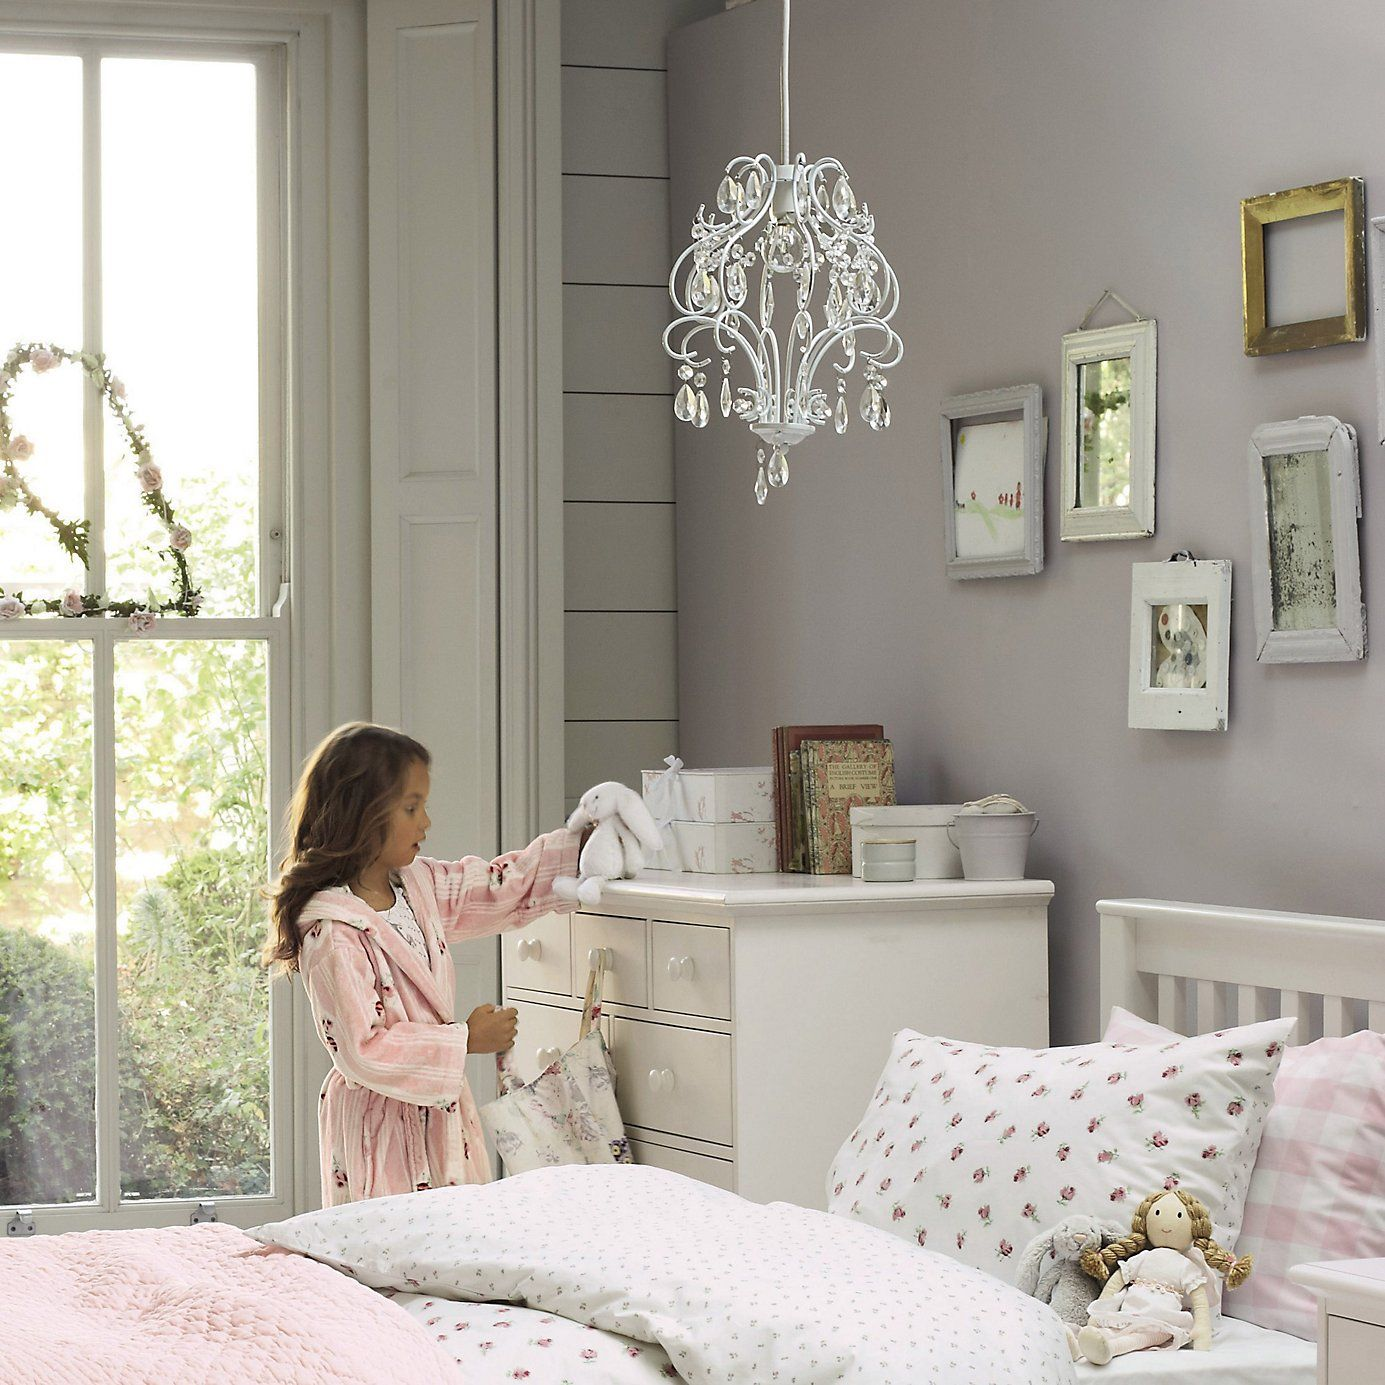 Chandelier ceiling light shade chandelier shades white company buy childrens bedroom bedroom accessories chandelier shade from the white company aloadofball Choice Image